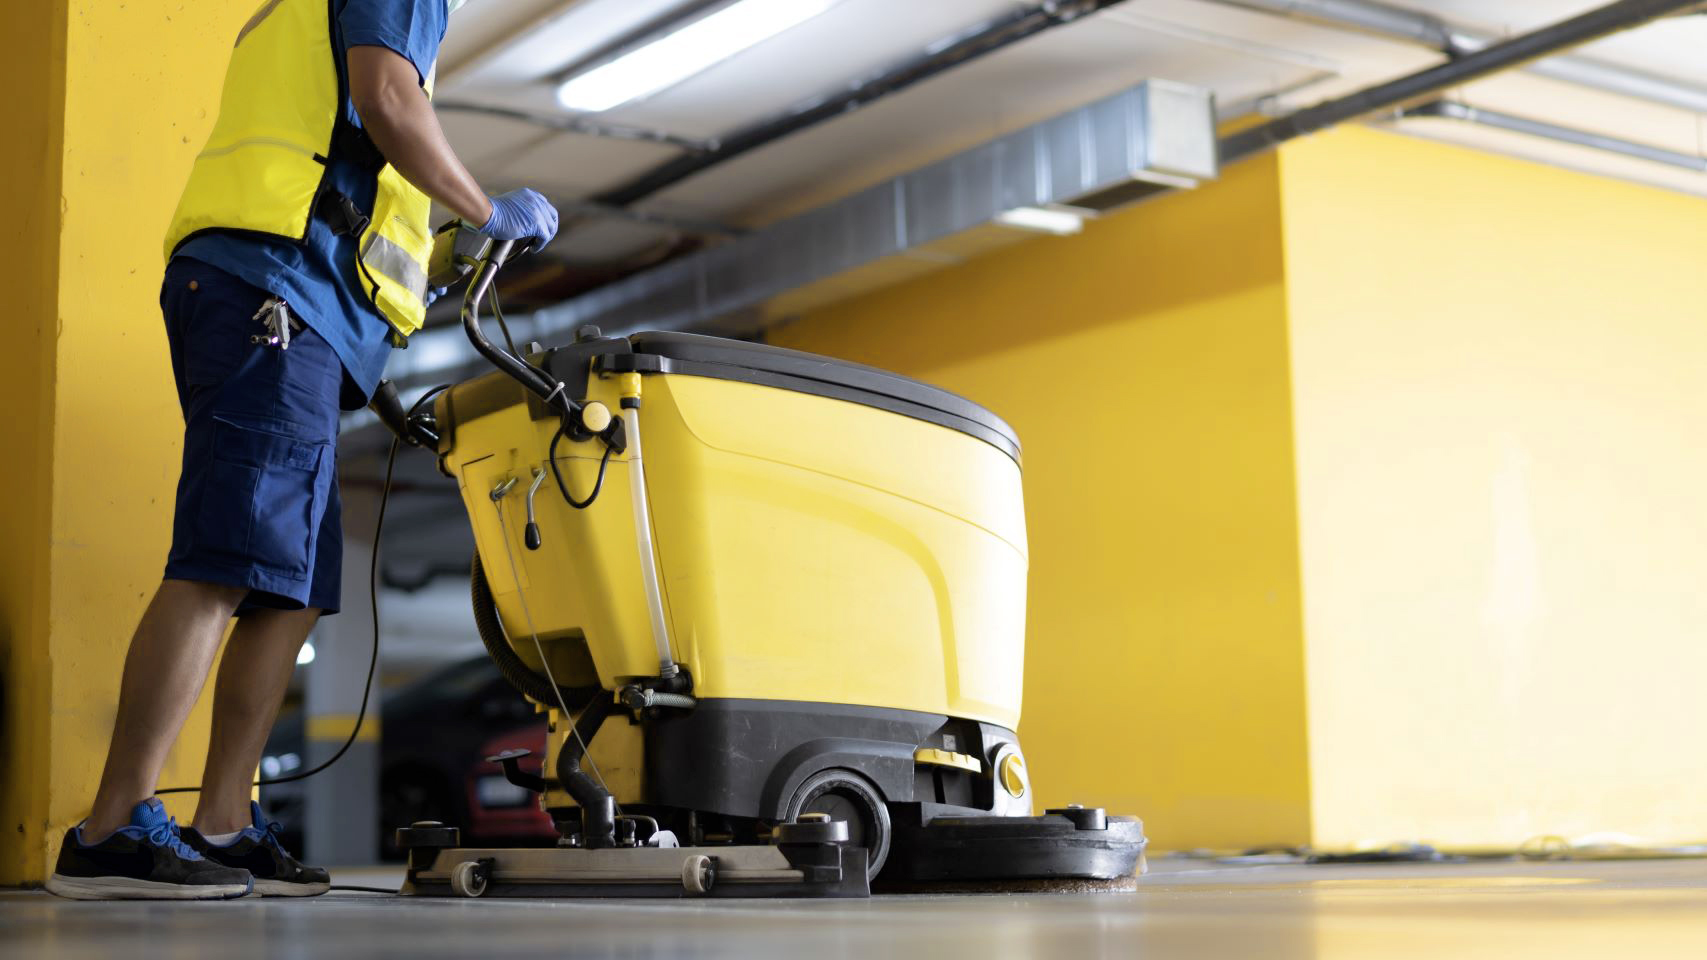 Find the Best Used Floor Scrubber for Your Business